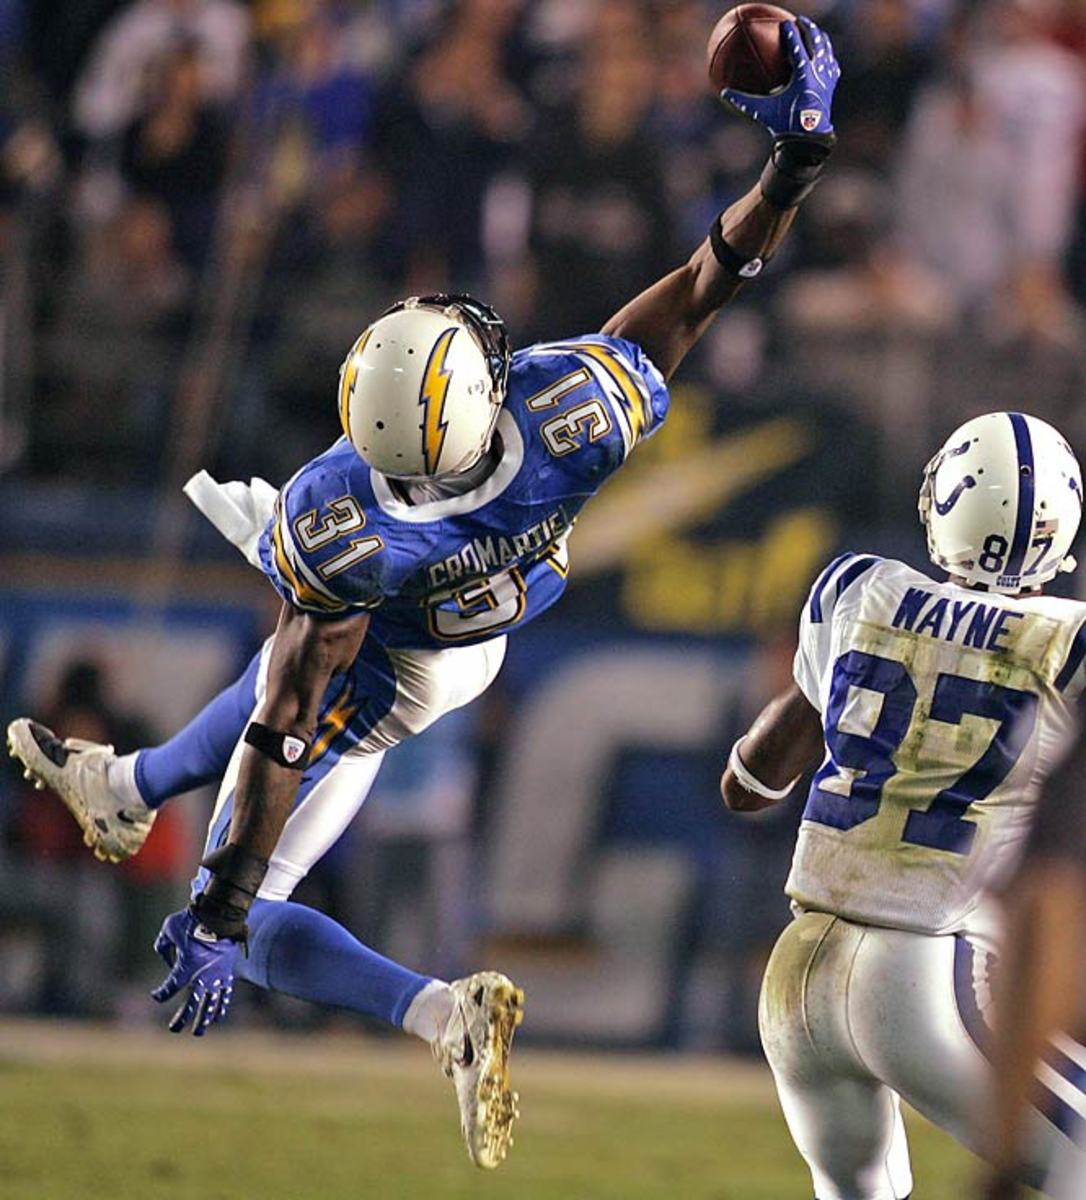 Chargers 23, Colts 21